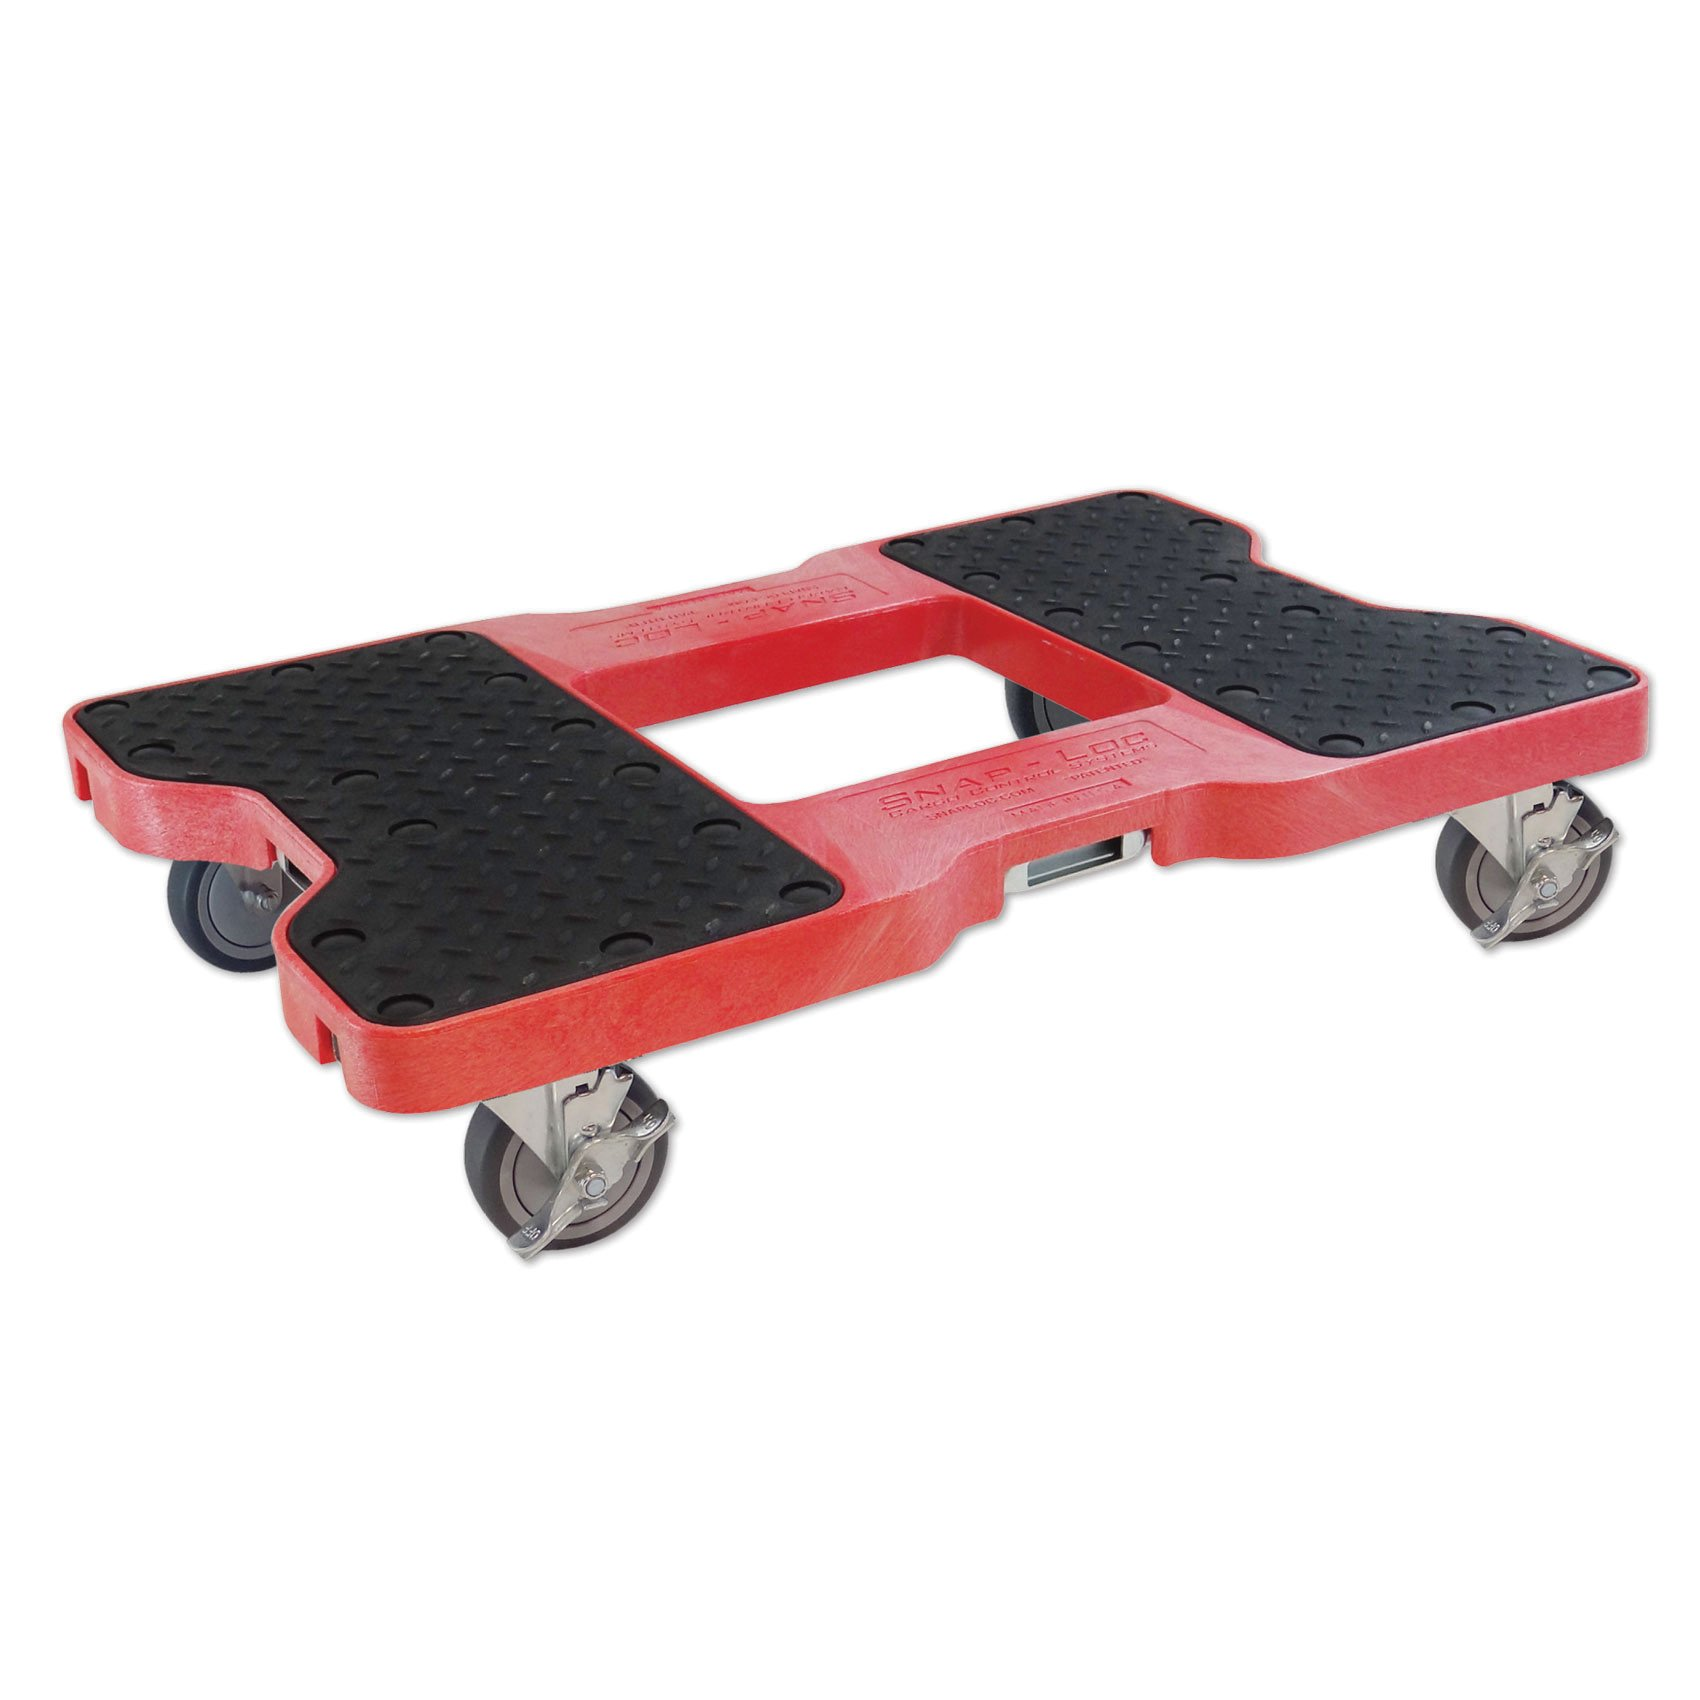 SNAP-LOC DOLLY RED (USA!) with 1,500 lb. capacity, steel frame, strap option, 4 inch casters by Snap-Loc